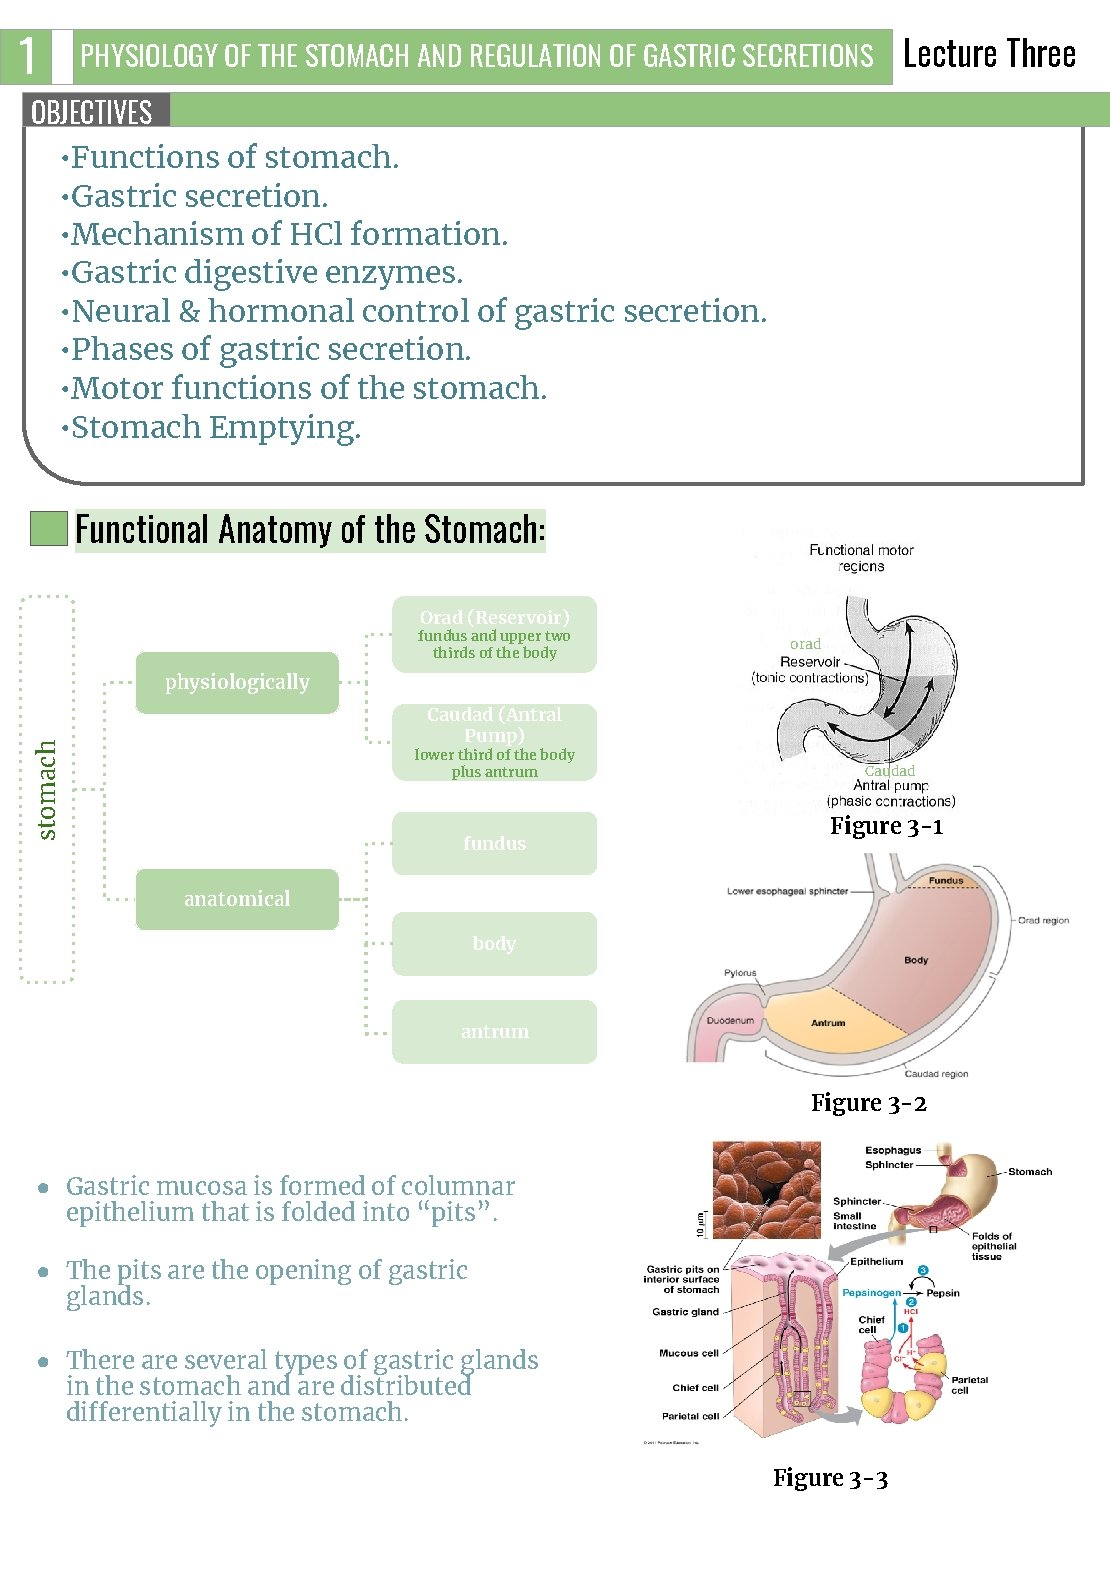 1 PHYSIOLOGY OF THE STOMACH AND REGULATION OF GASTRIC SECRETIONS Lecture Three OBJECTIVES •